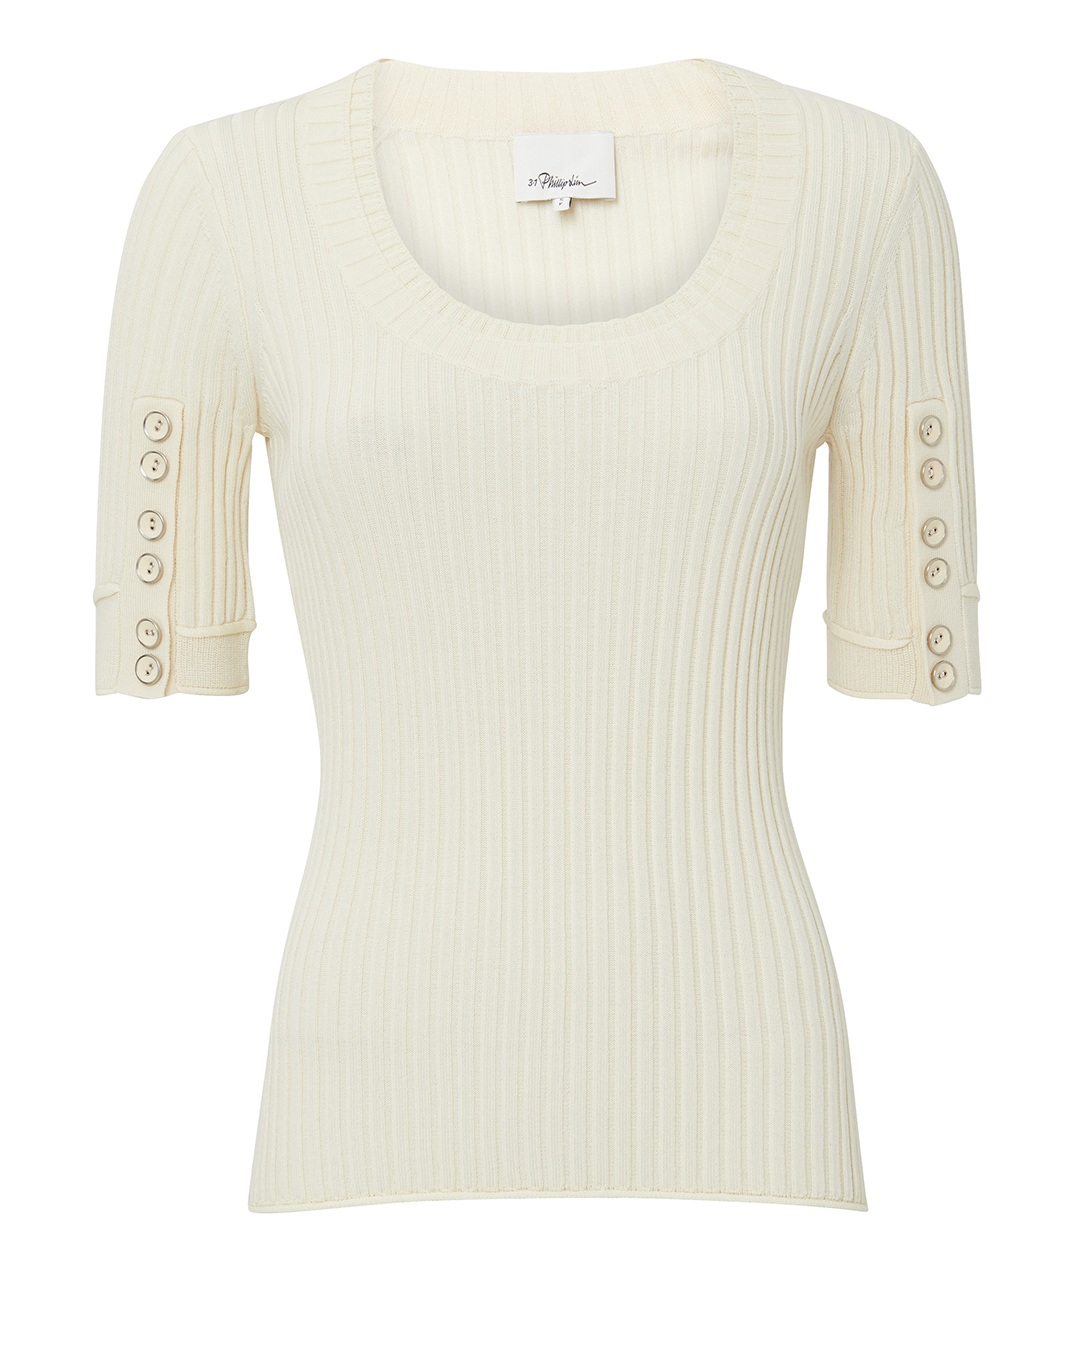 PHILLIP LIM Ribbed Button Sleeve Top